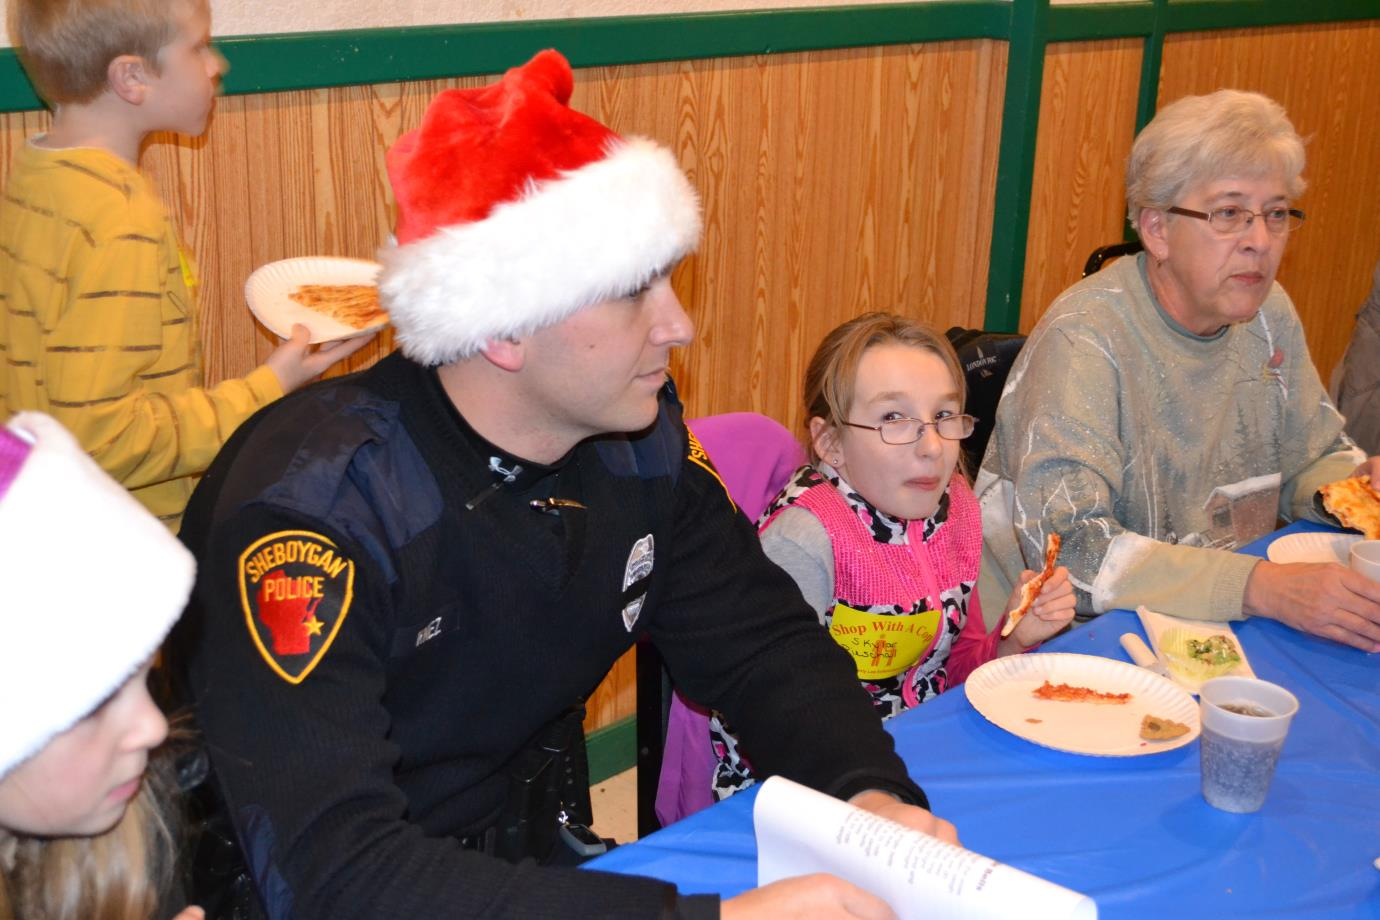 Officer wearing Santa hat while girl nearby laughs